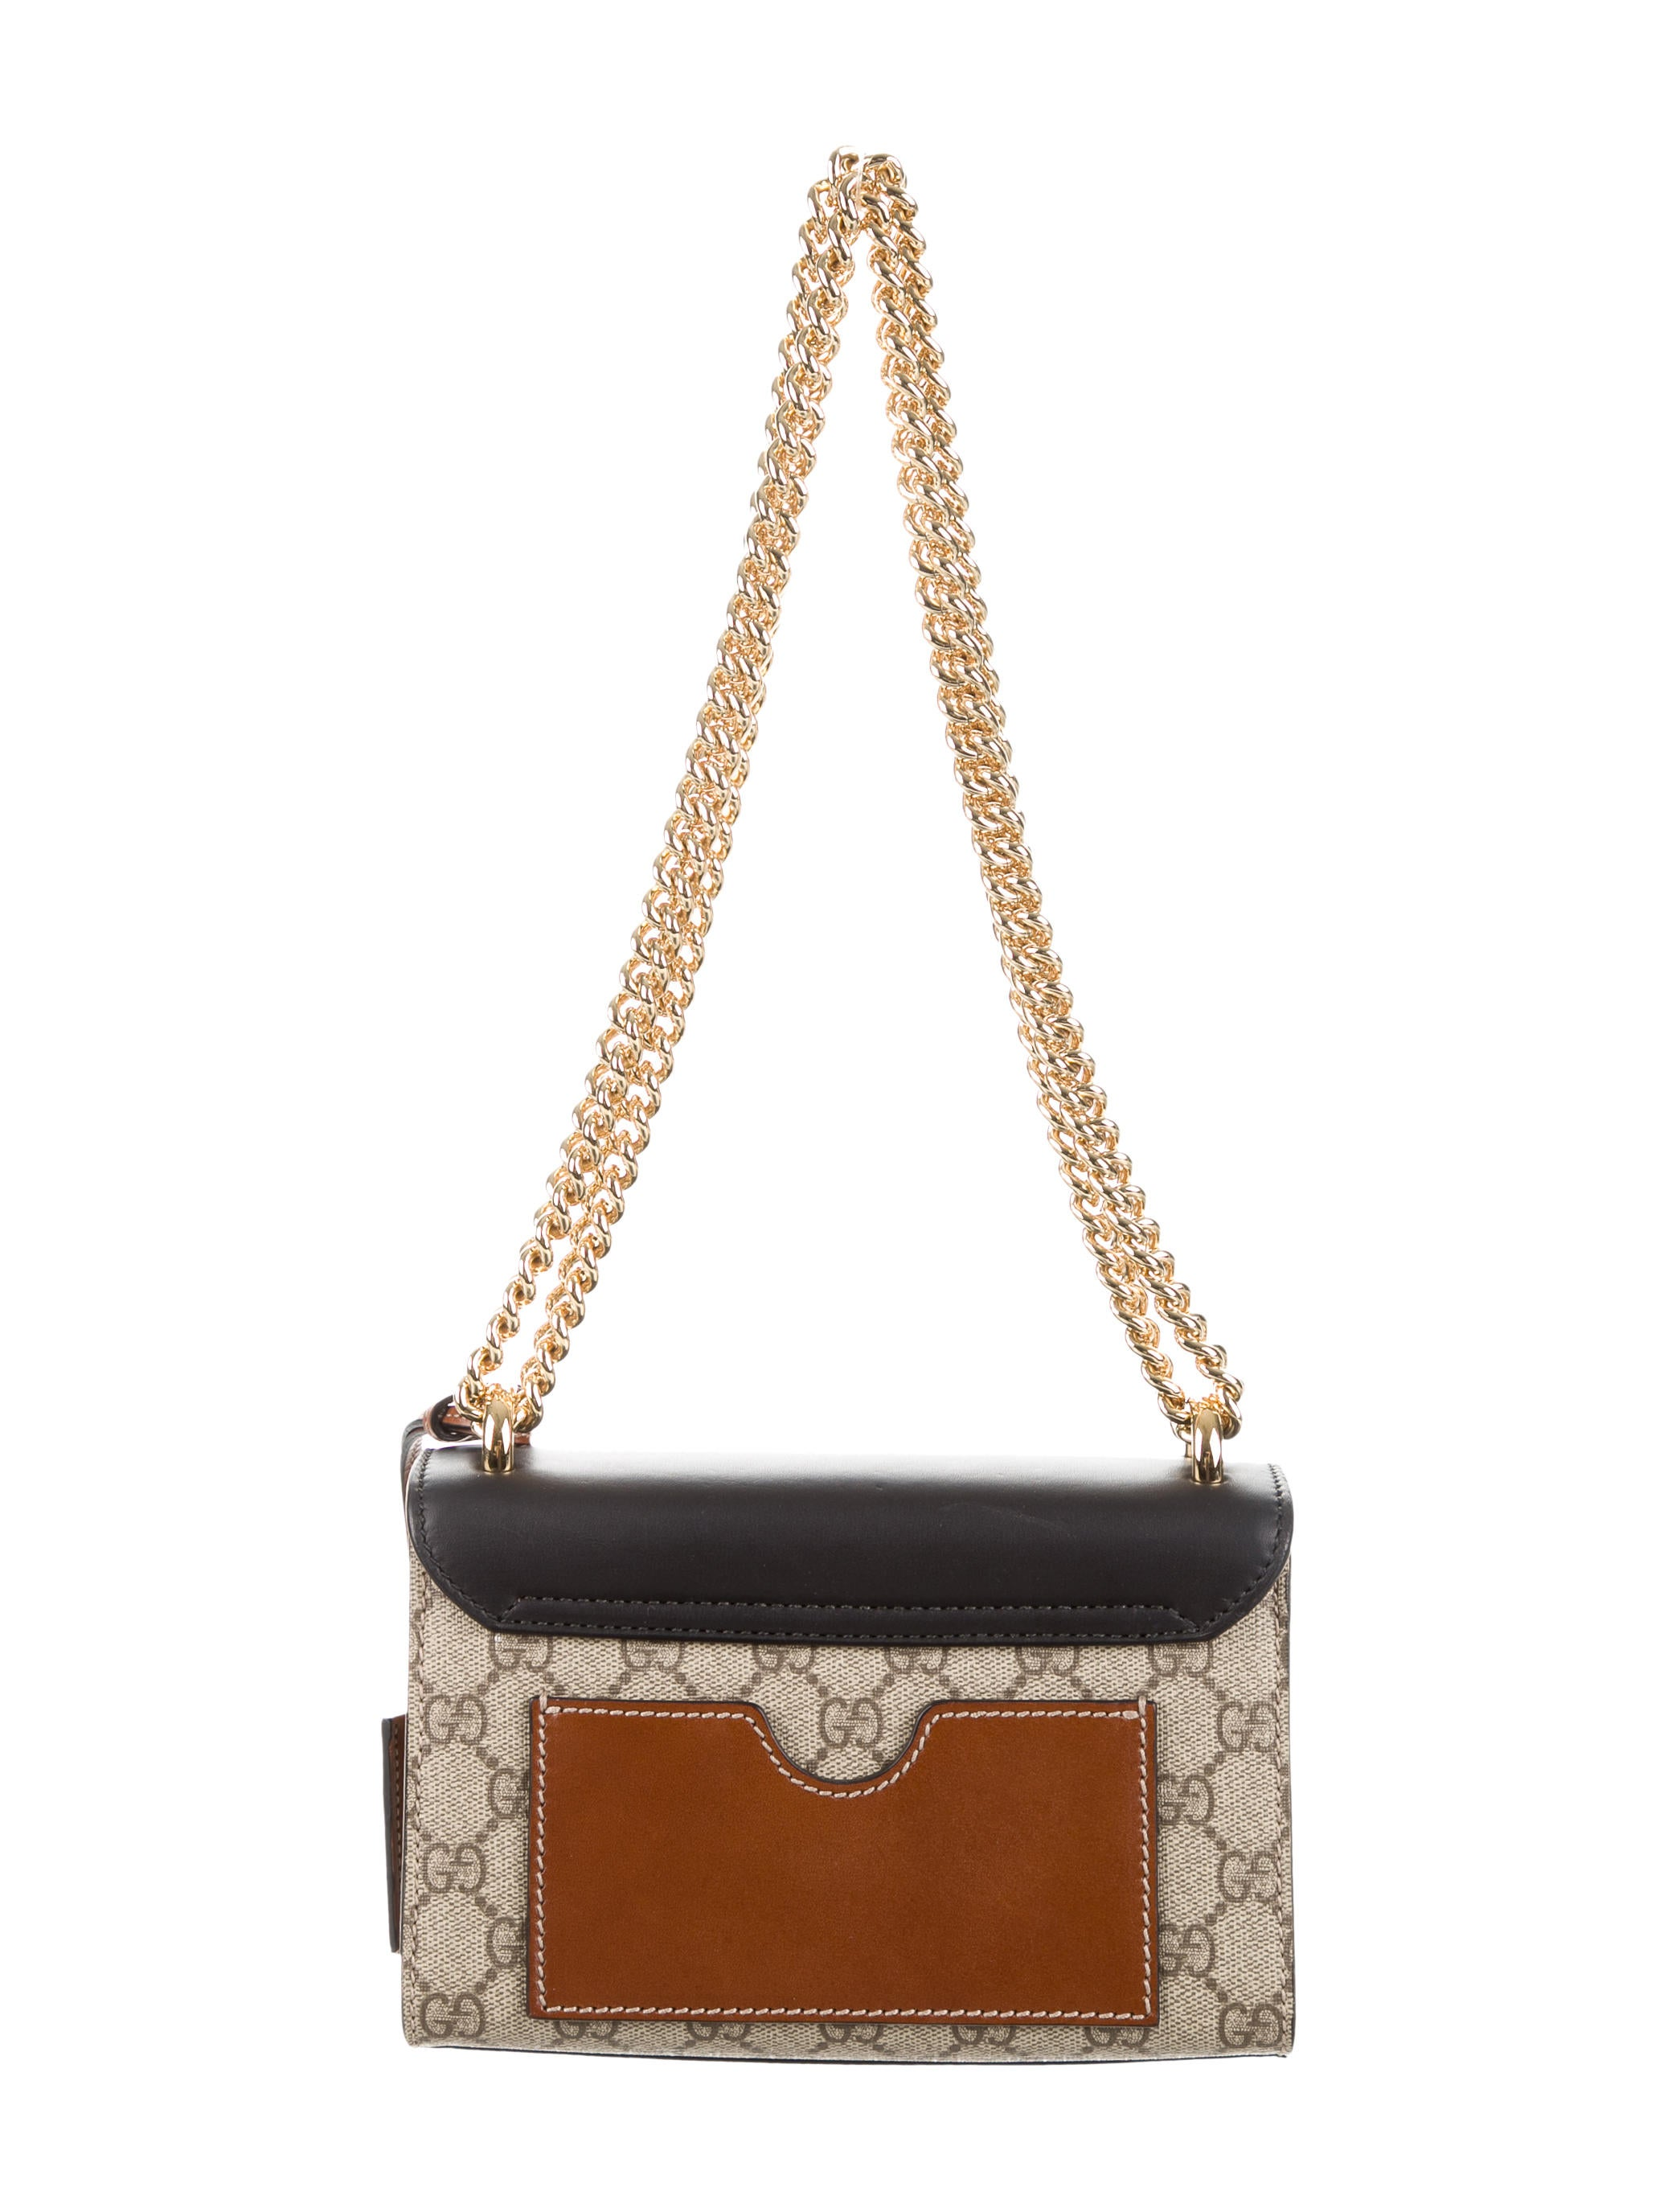 Gucci Padlock Gg Supreme Shoulder Bag Handbags